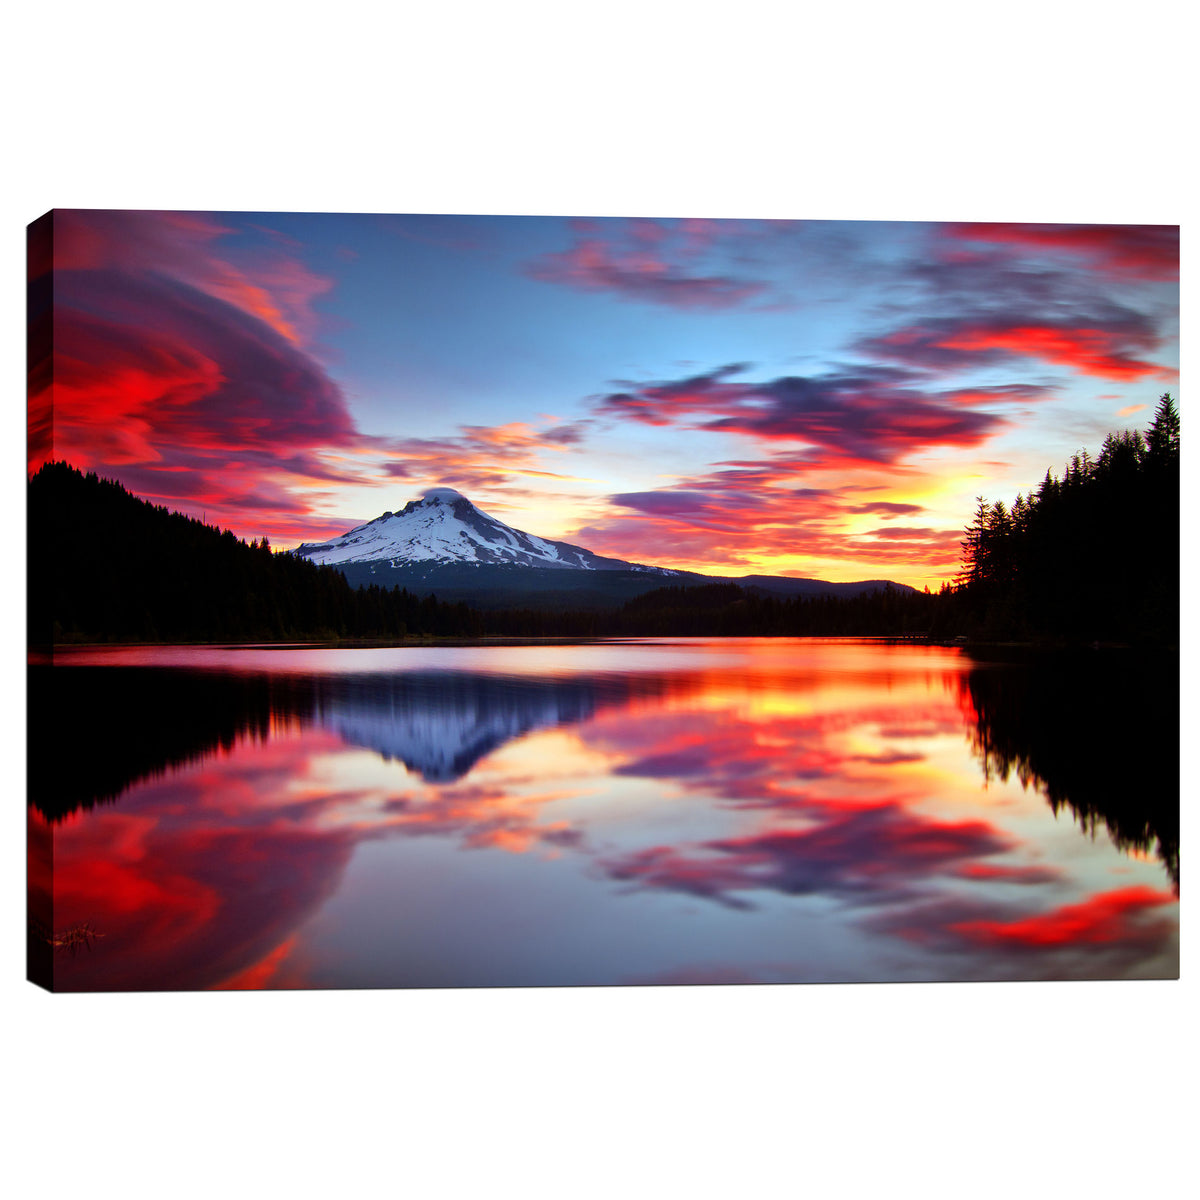 "Epic Graffiti ""Sunrise on the Lake"" by Darren White, Giclee Canvas Wall Art"